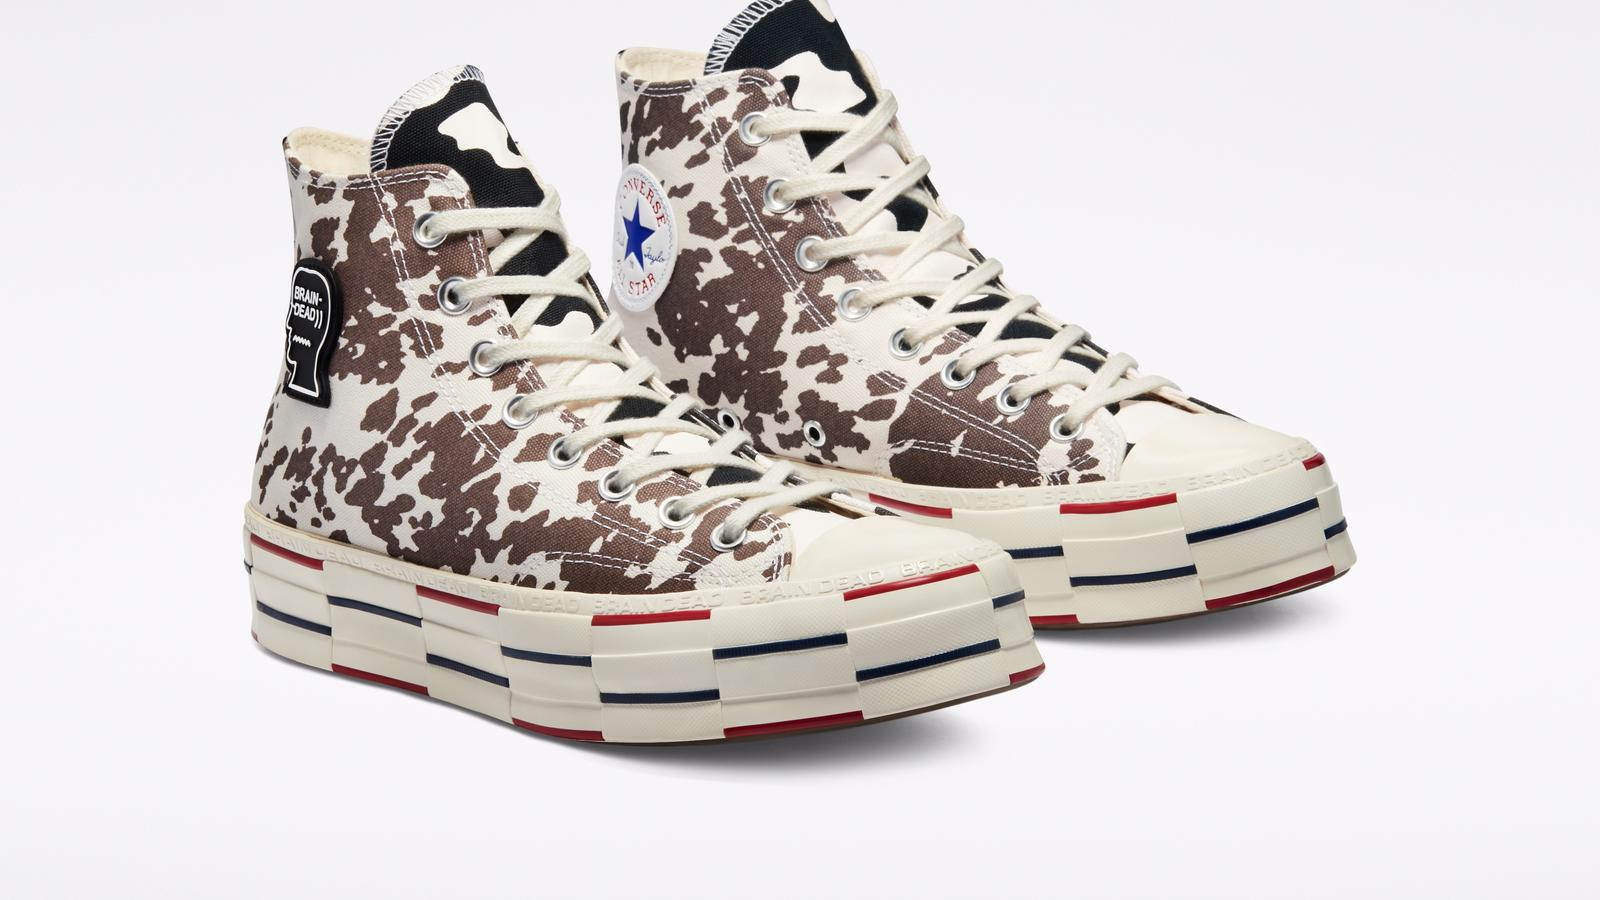 Converse Brain Dead Collaboration HO20 23